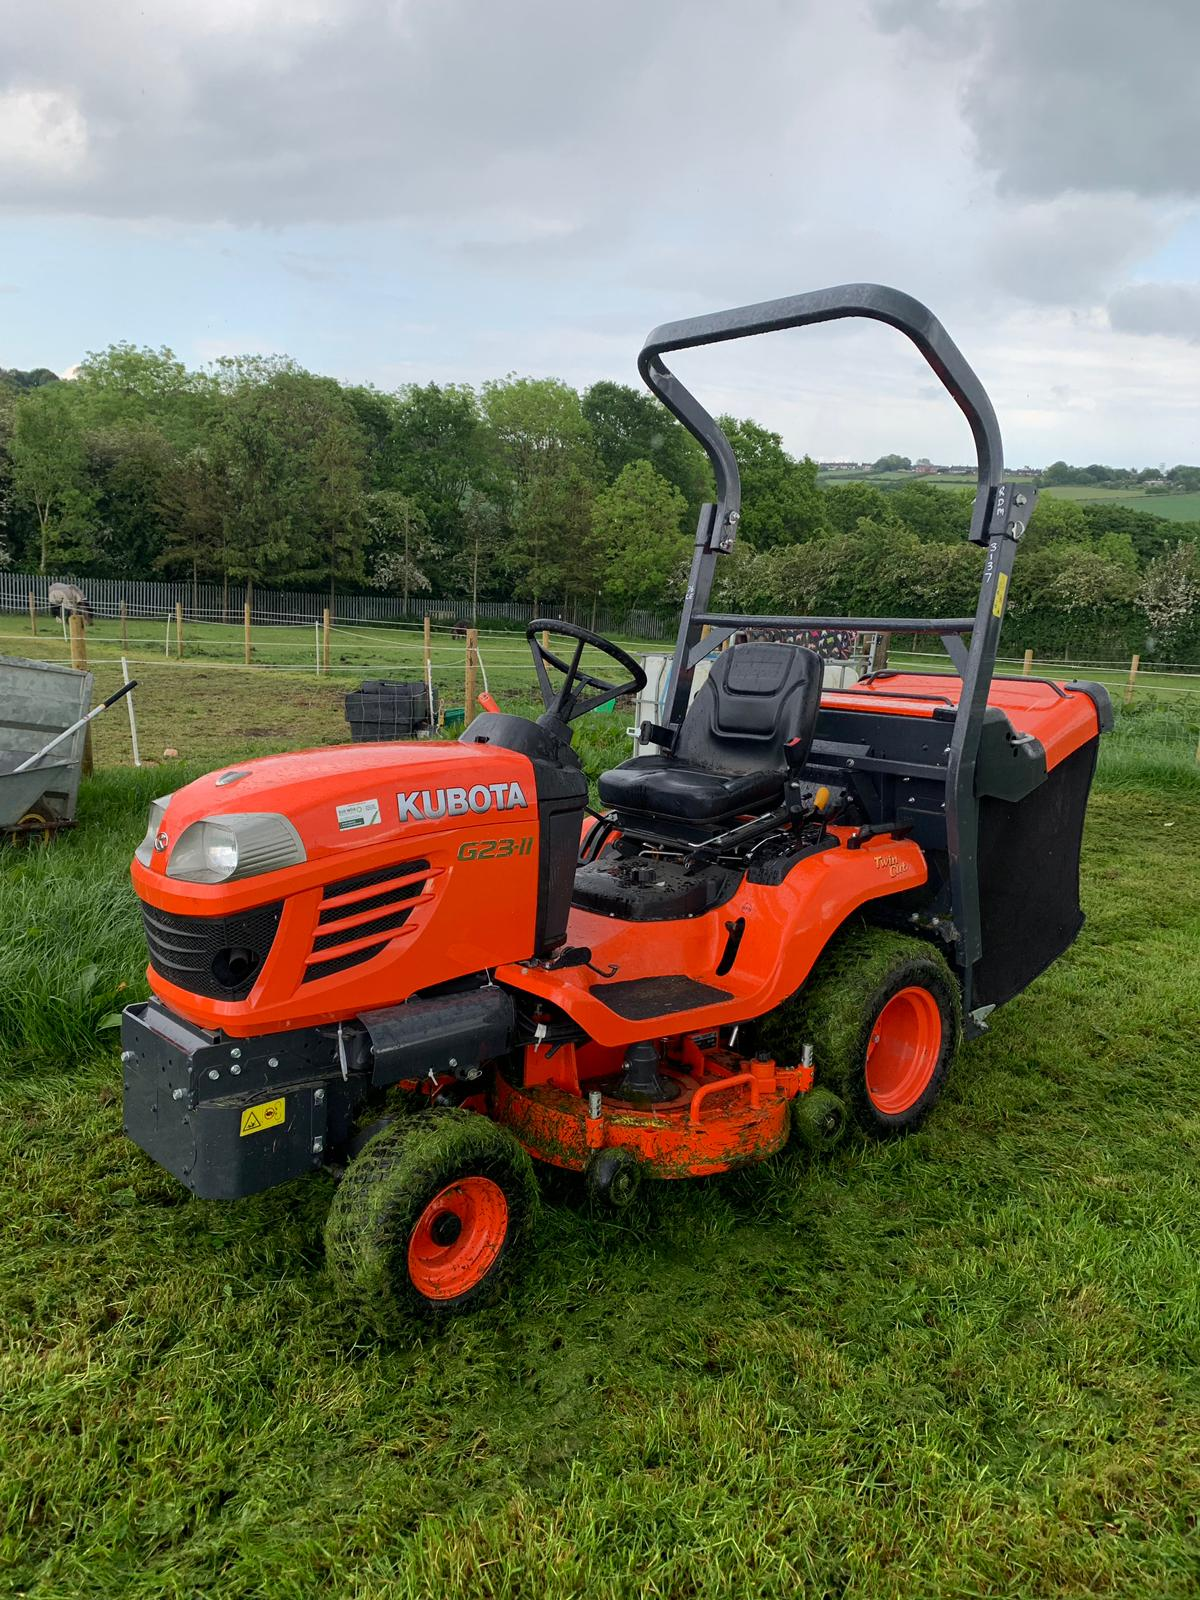 Lot 56 - 2015 KUBOTA G23-II TWIN CUT LAWN MOWER WITH ROLL BAR, HYDRAULIC TIP, LOW DUMP COLLECTOR - 28 HOURS!!